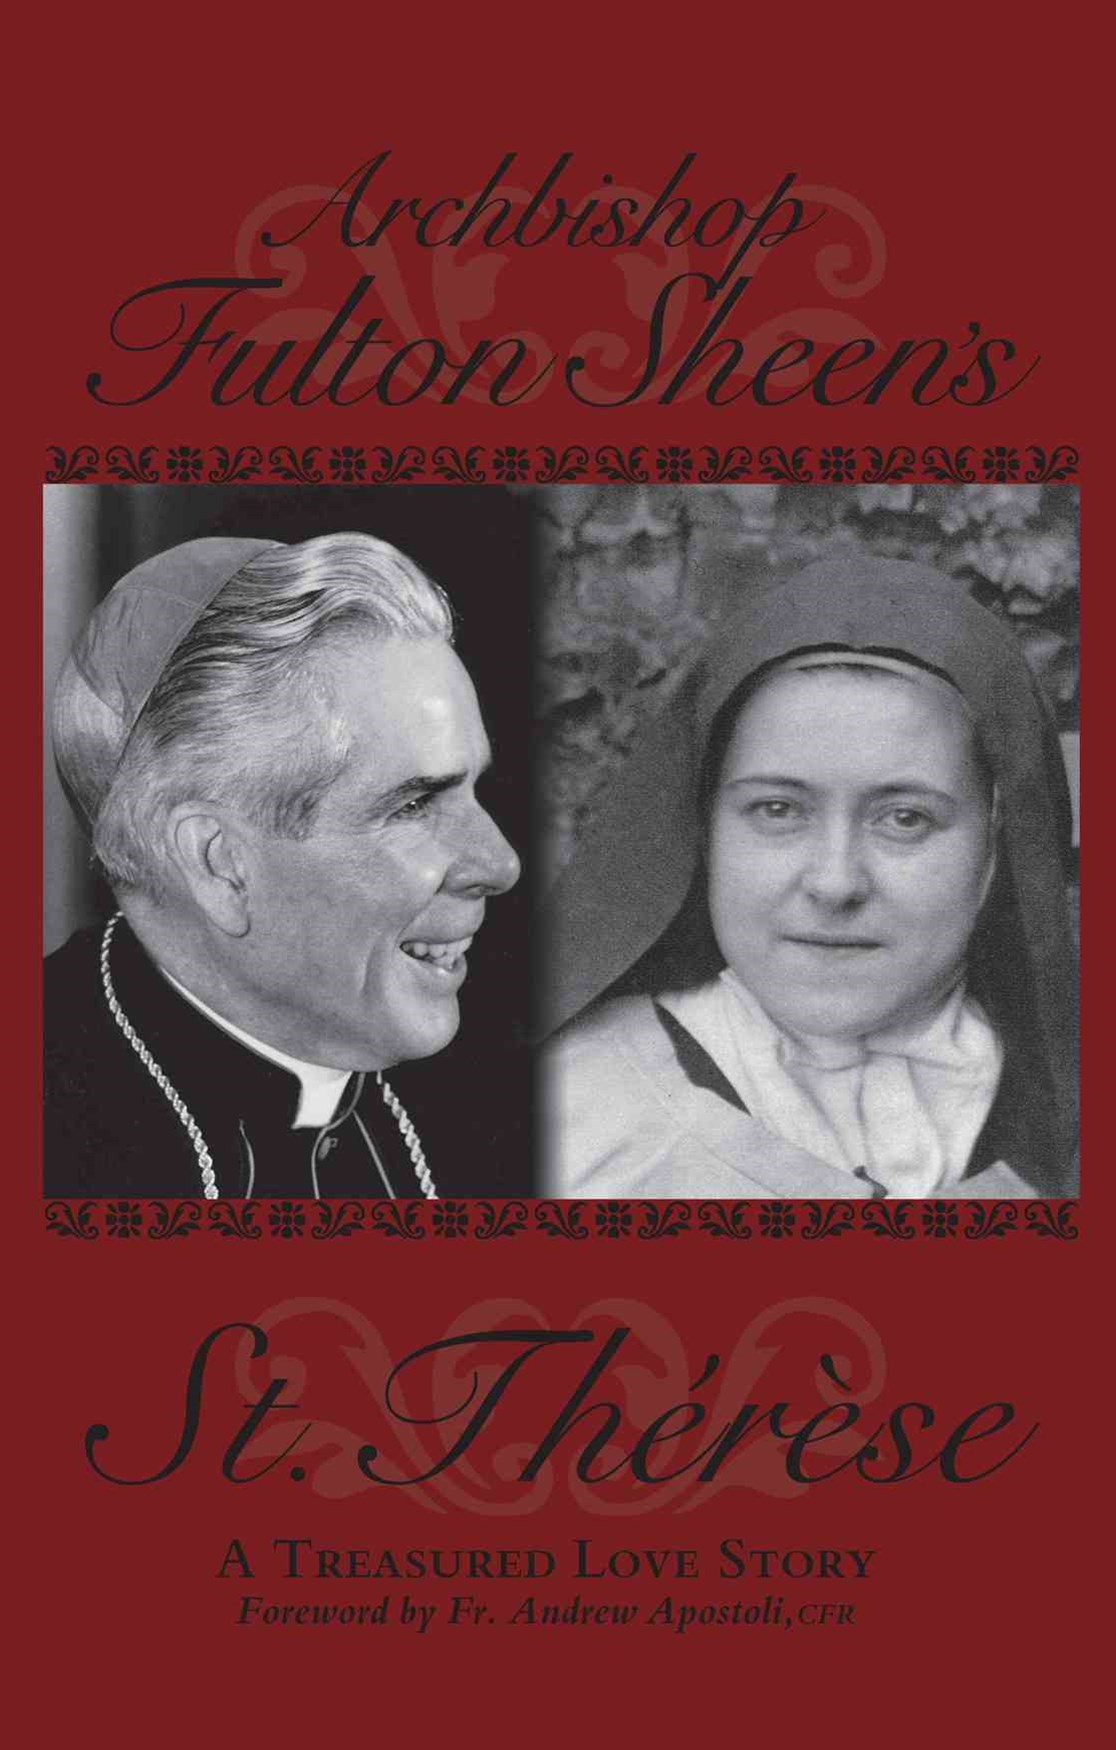 Archbishop Fulton Sheen's St. Therese